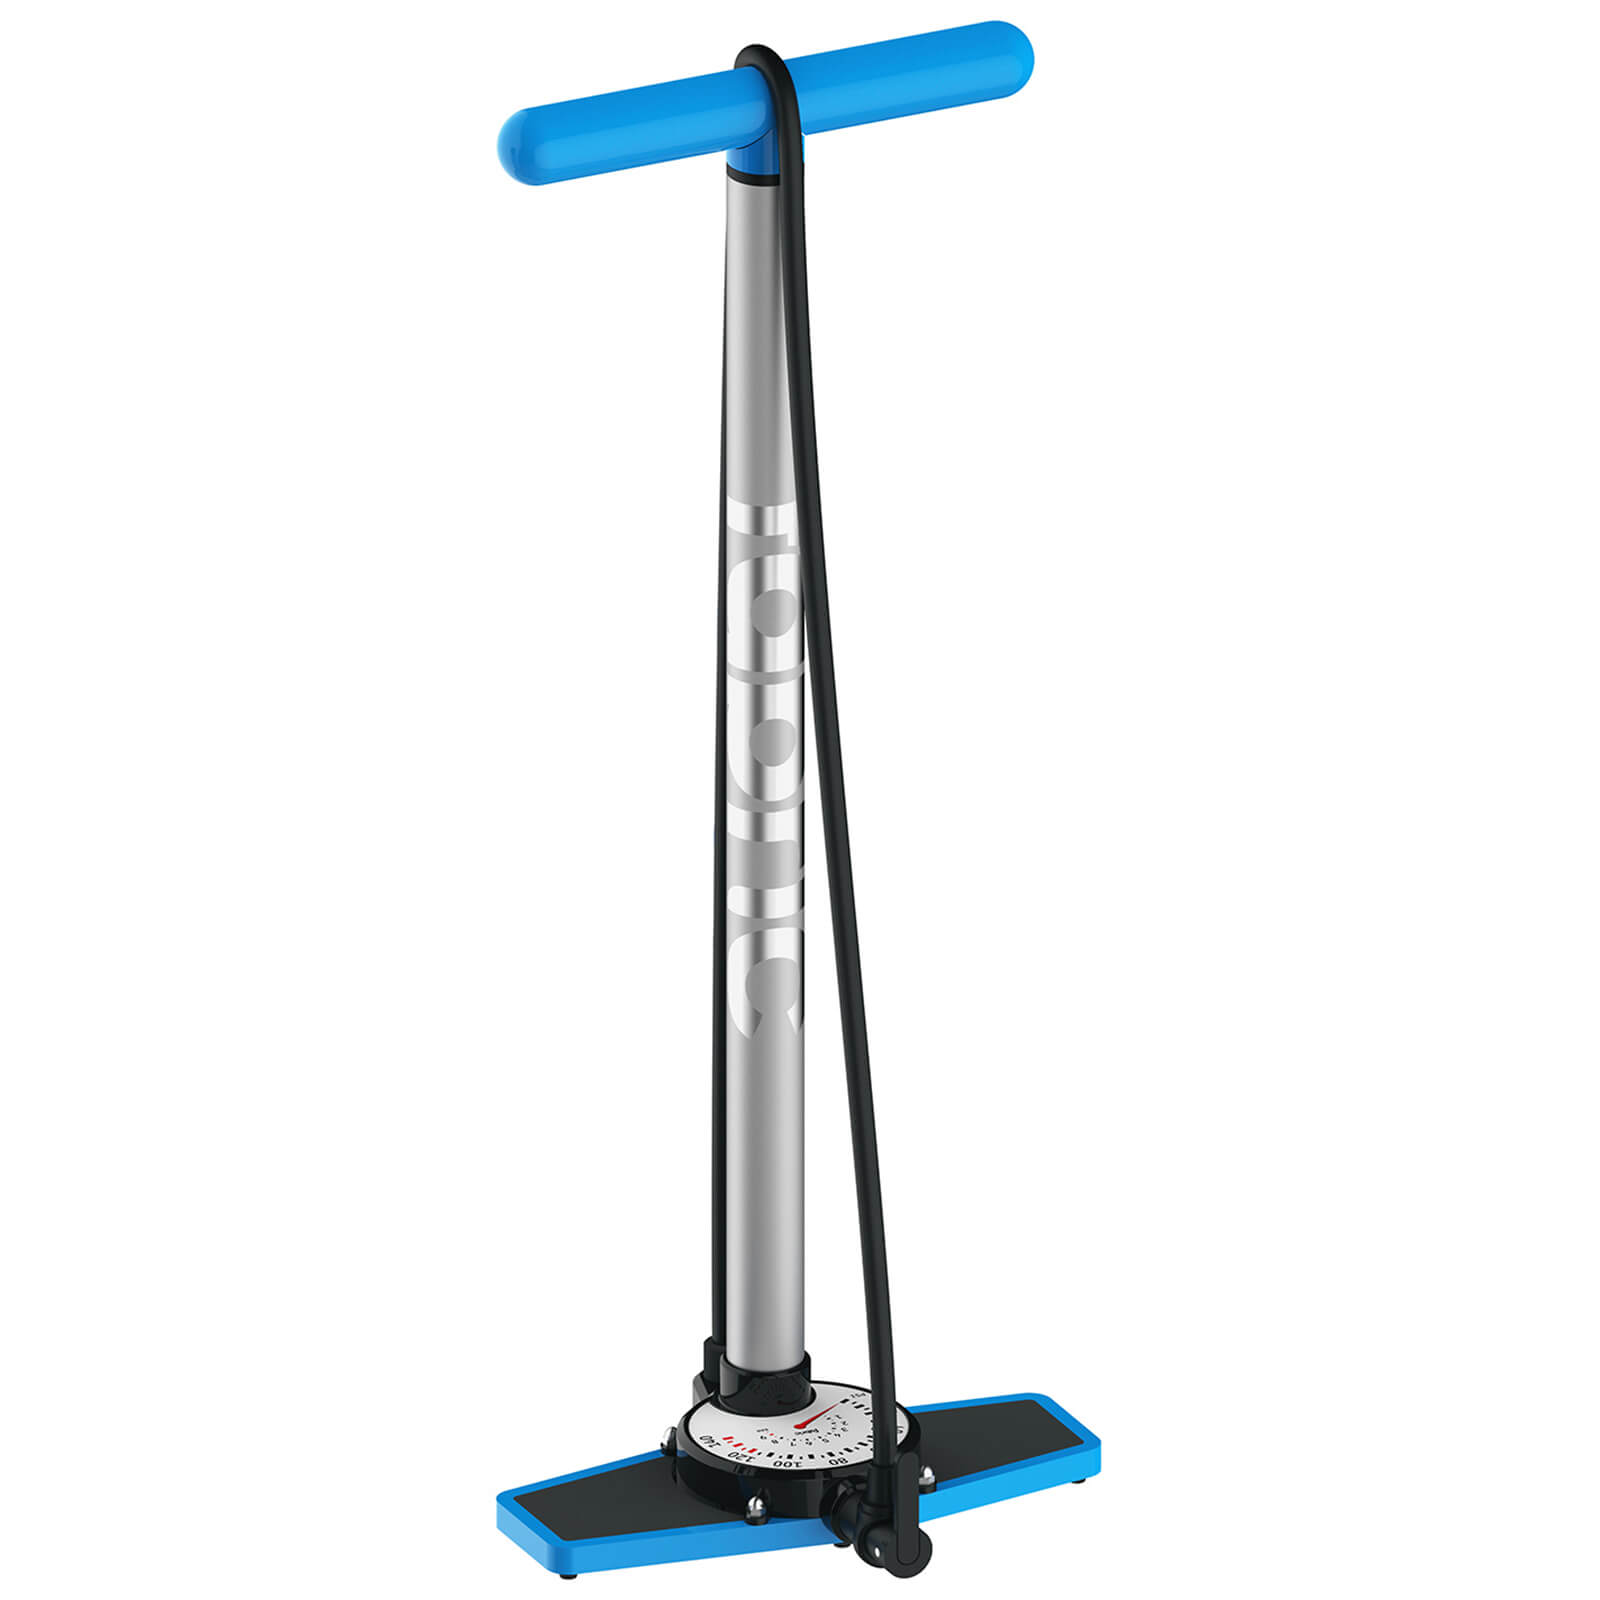 Fabric Garage 2 Floor Pump